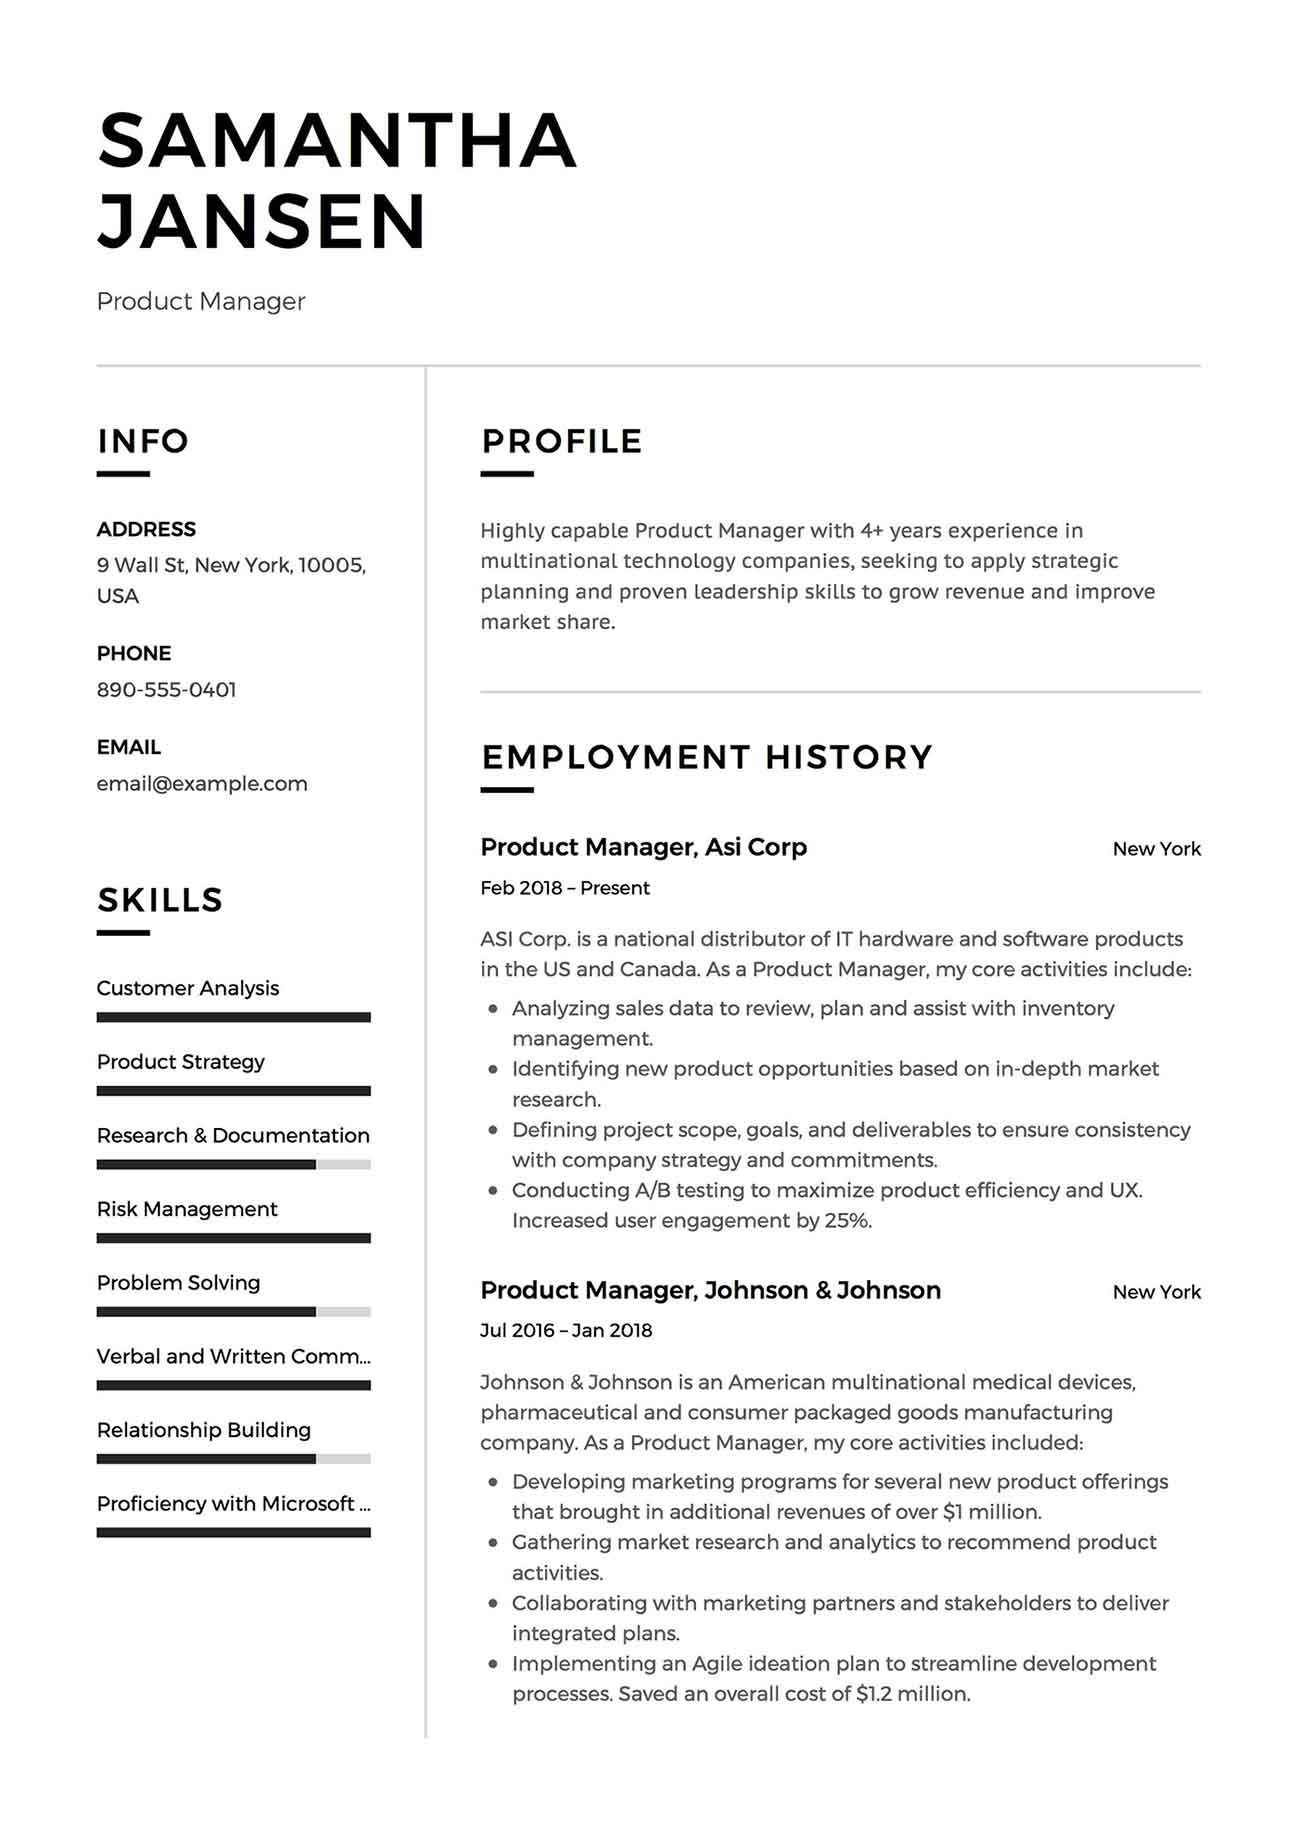 Reverse Chronological Order On A Resume 2020 Algrim Co